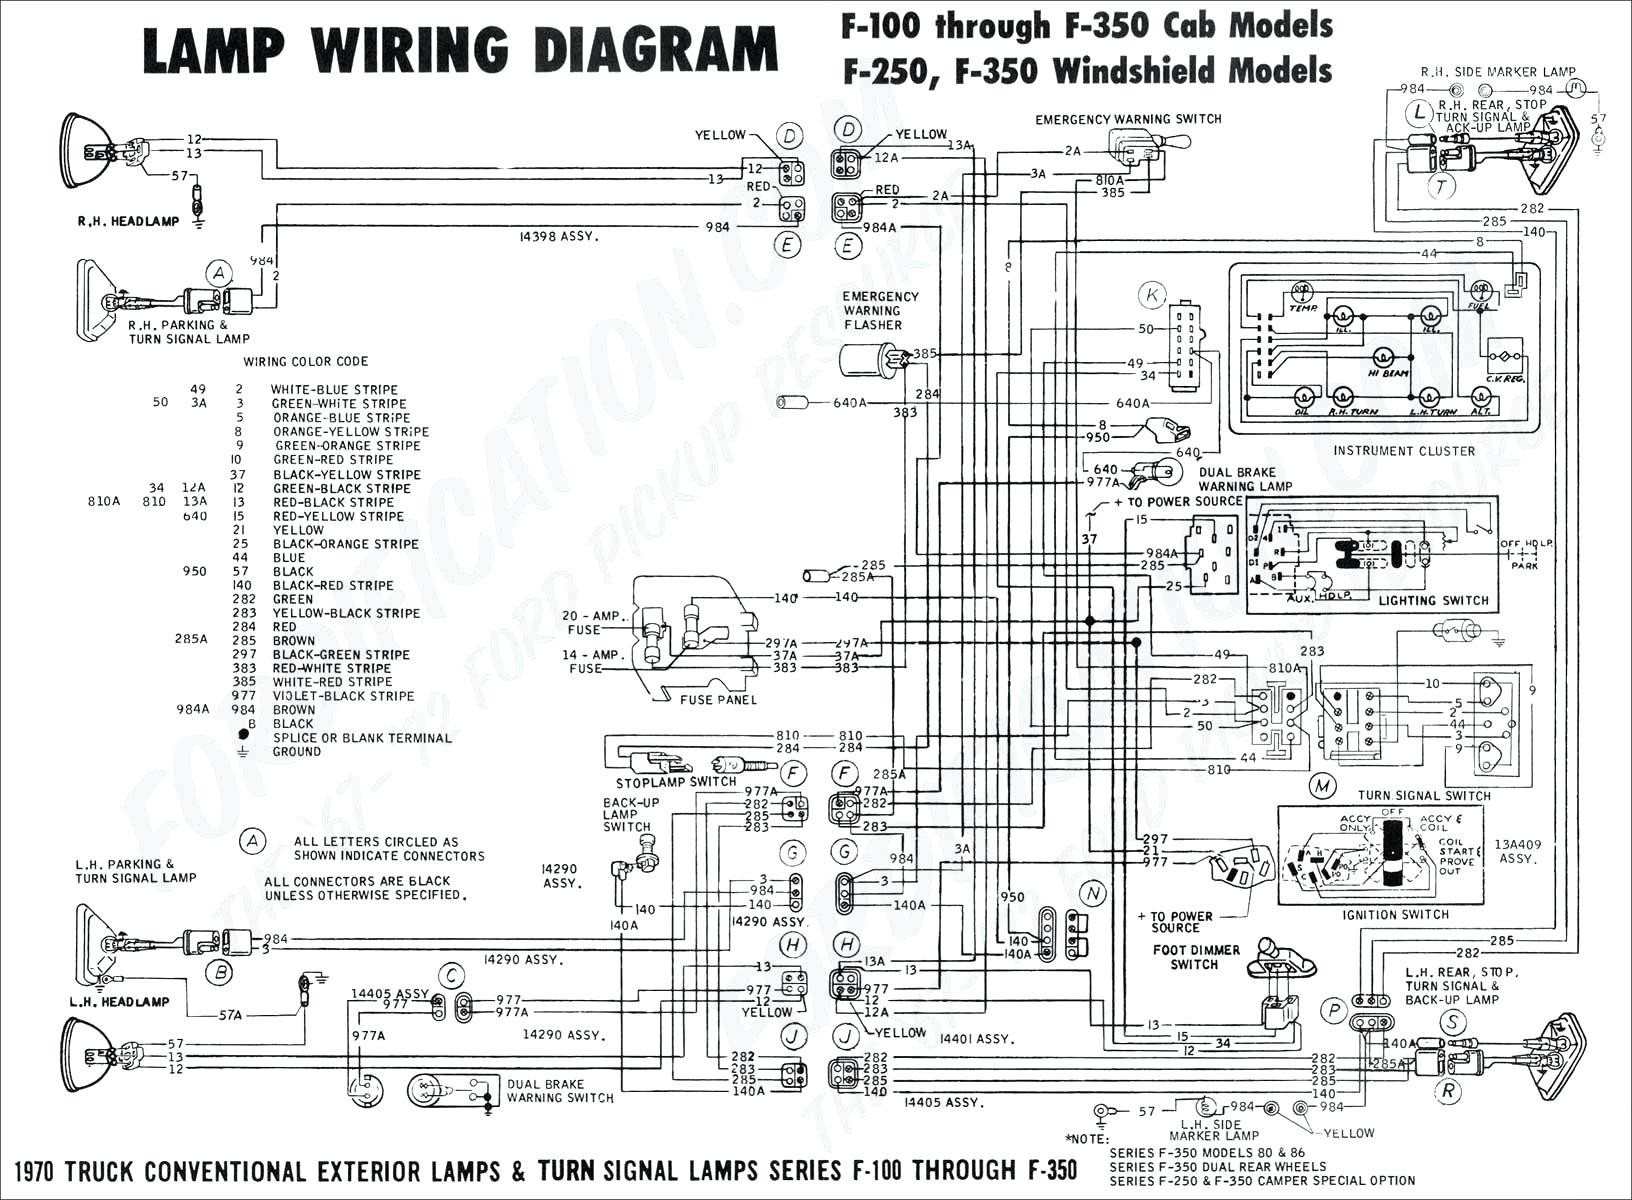 2001 ford escape engine diagram wiring library 2003 ford taurus engine diagram 2003 ford escape engine diagram 2003 ford econoline van fuse diagram